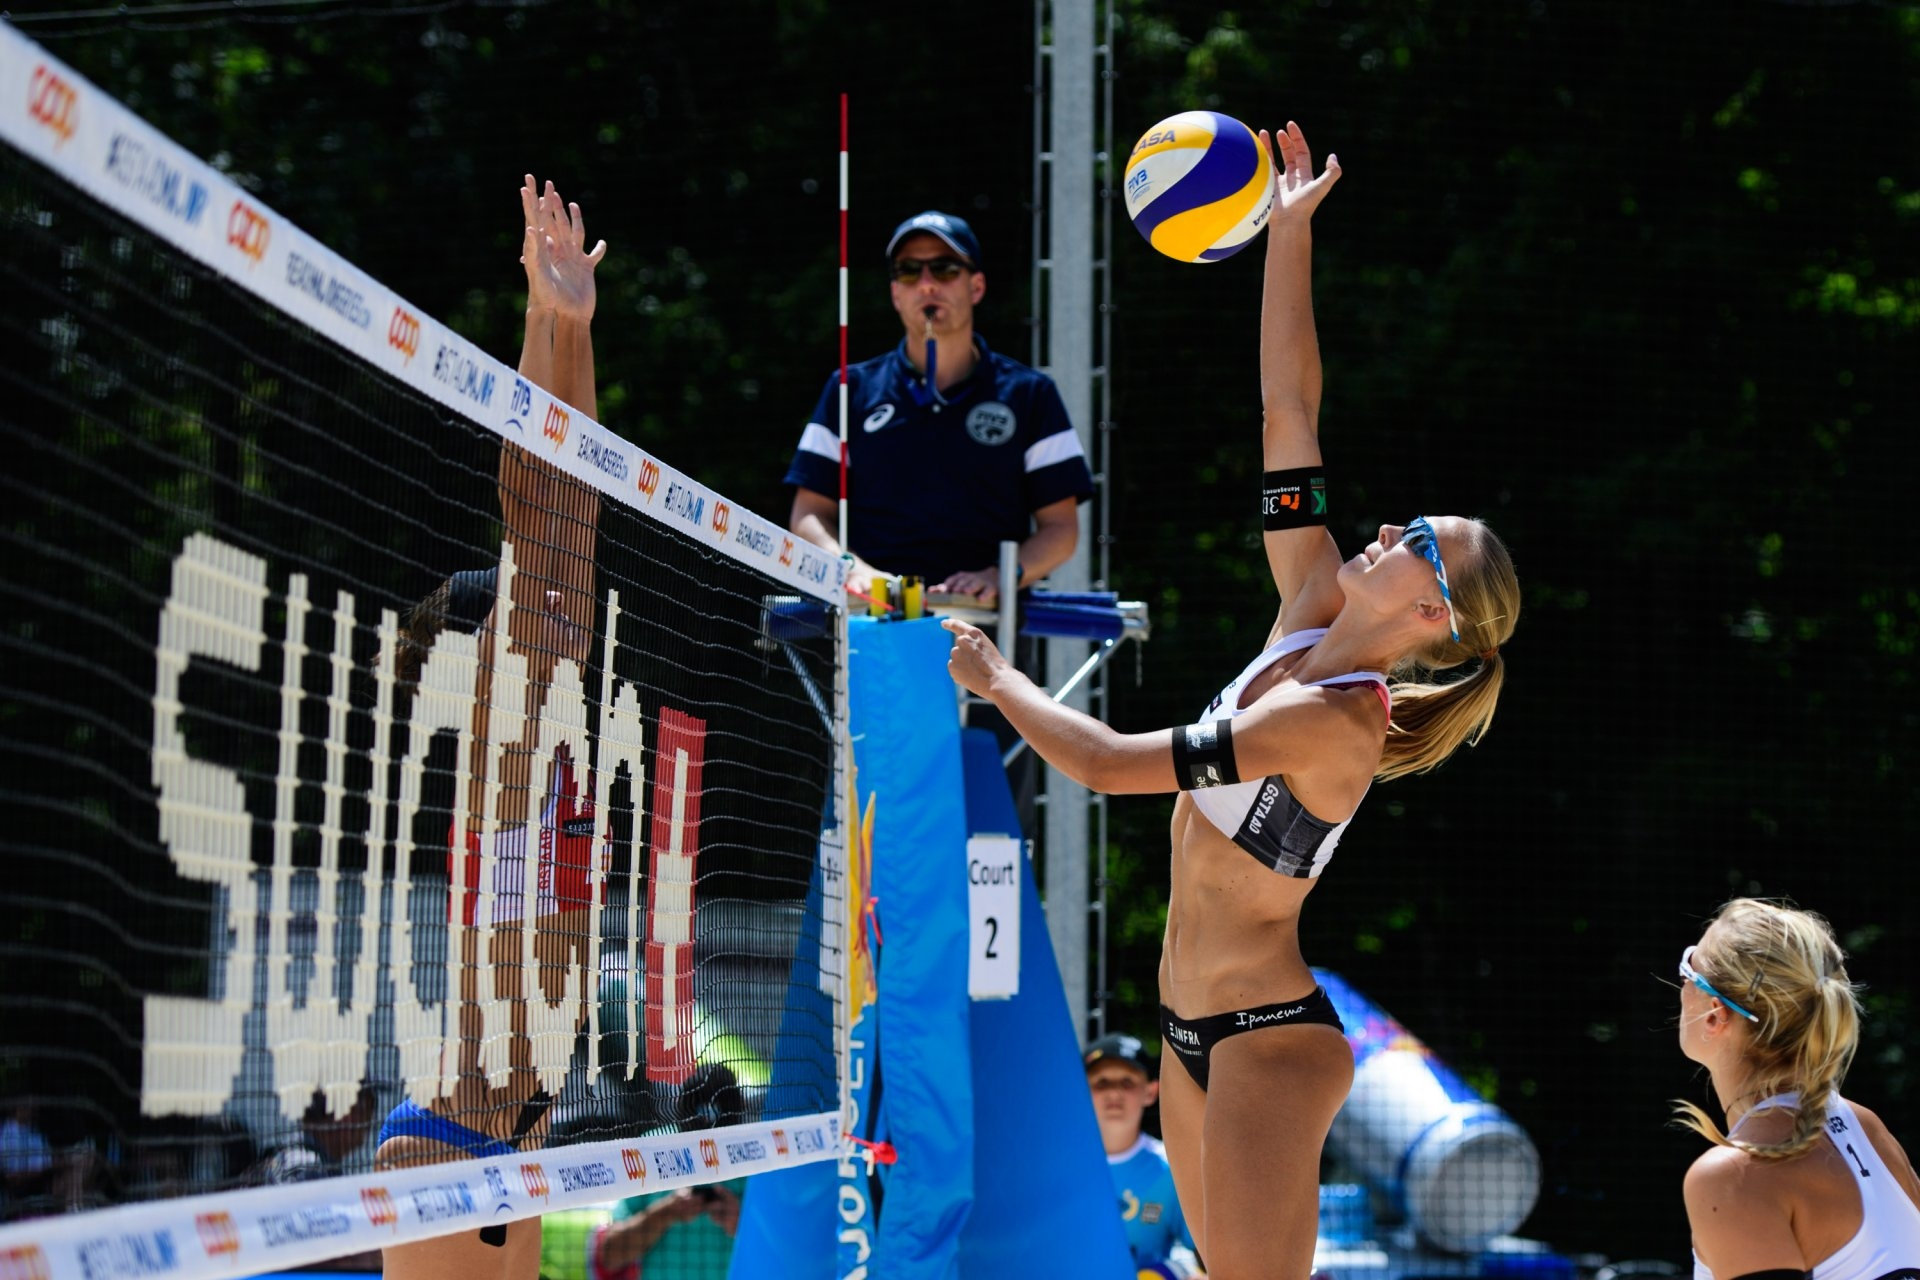 Germany's Sandra Ittlinger spikes during the qualification tournament (Photocredit: FIVB)